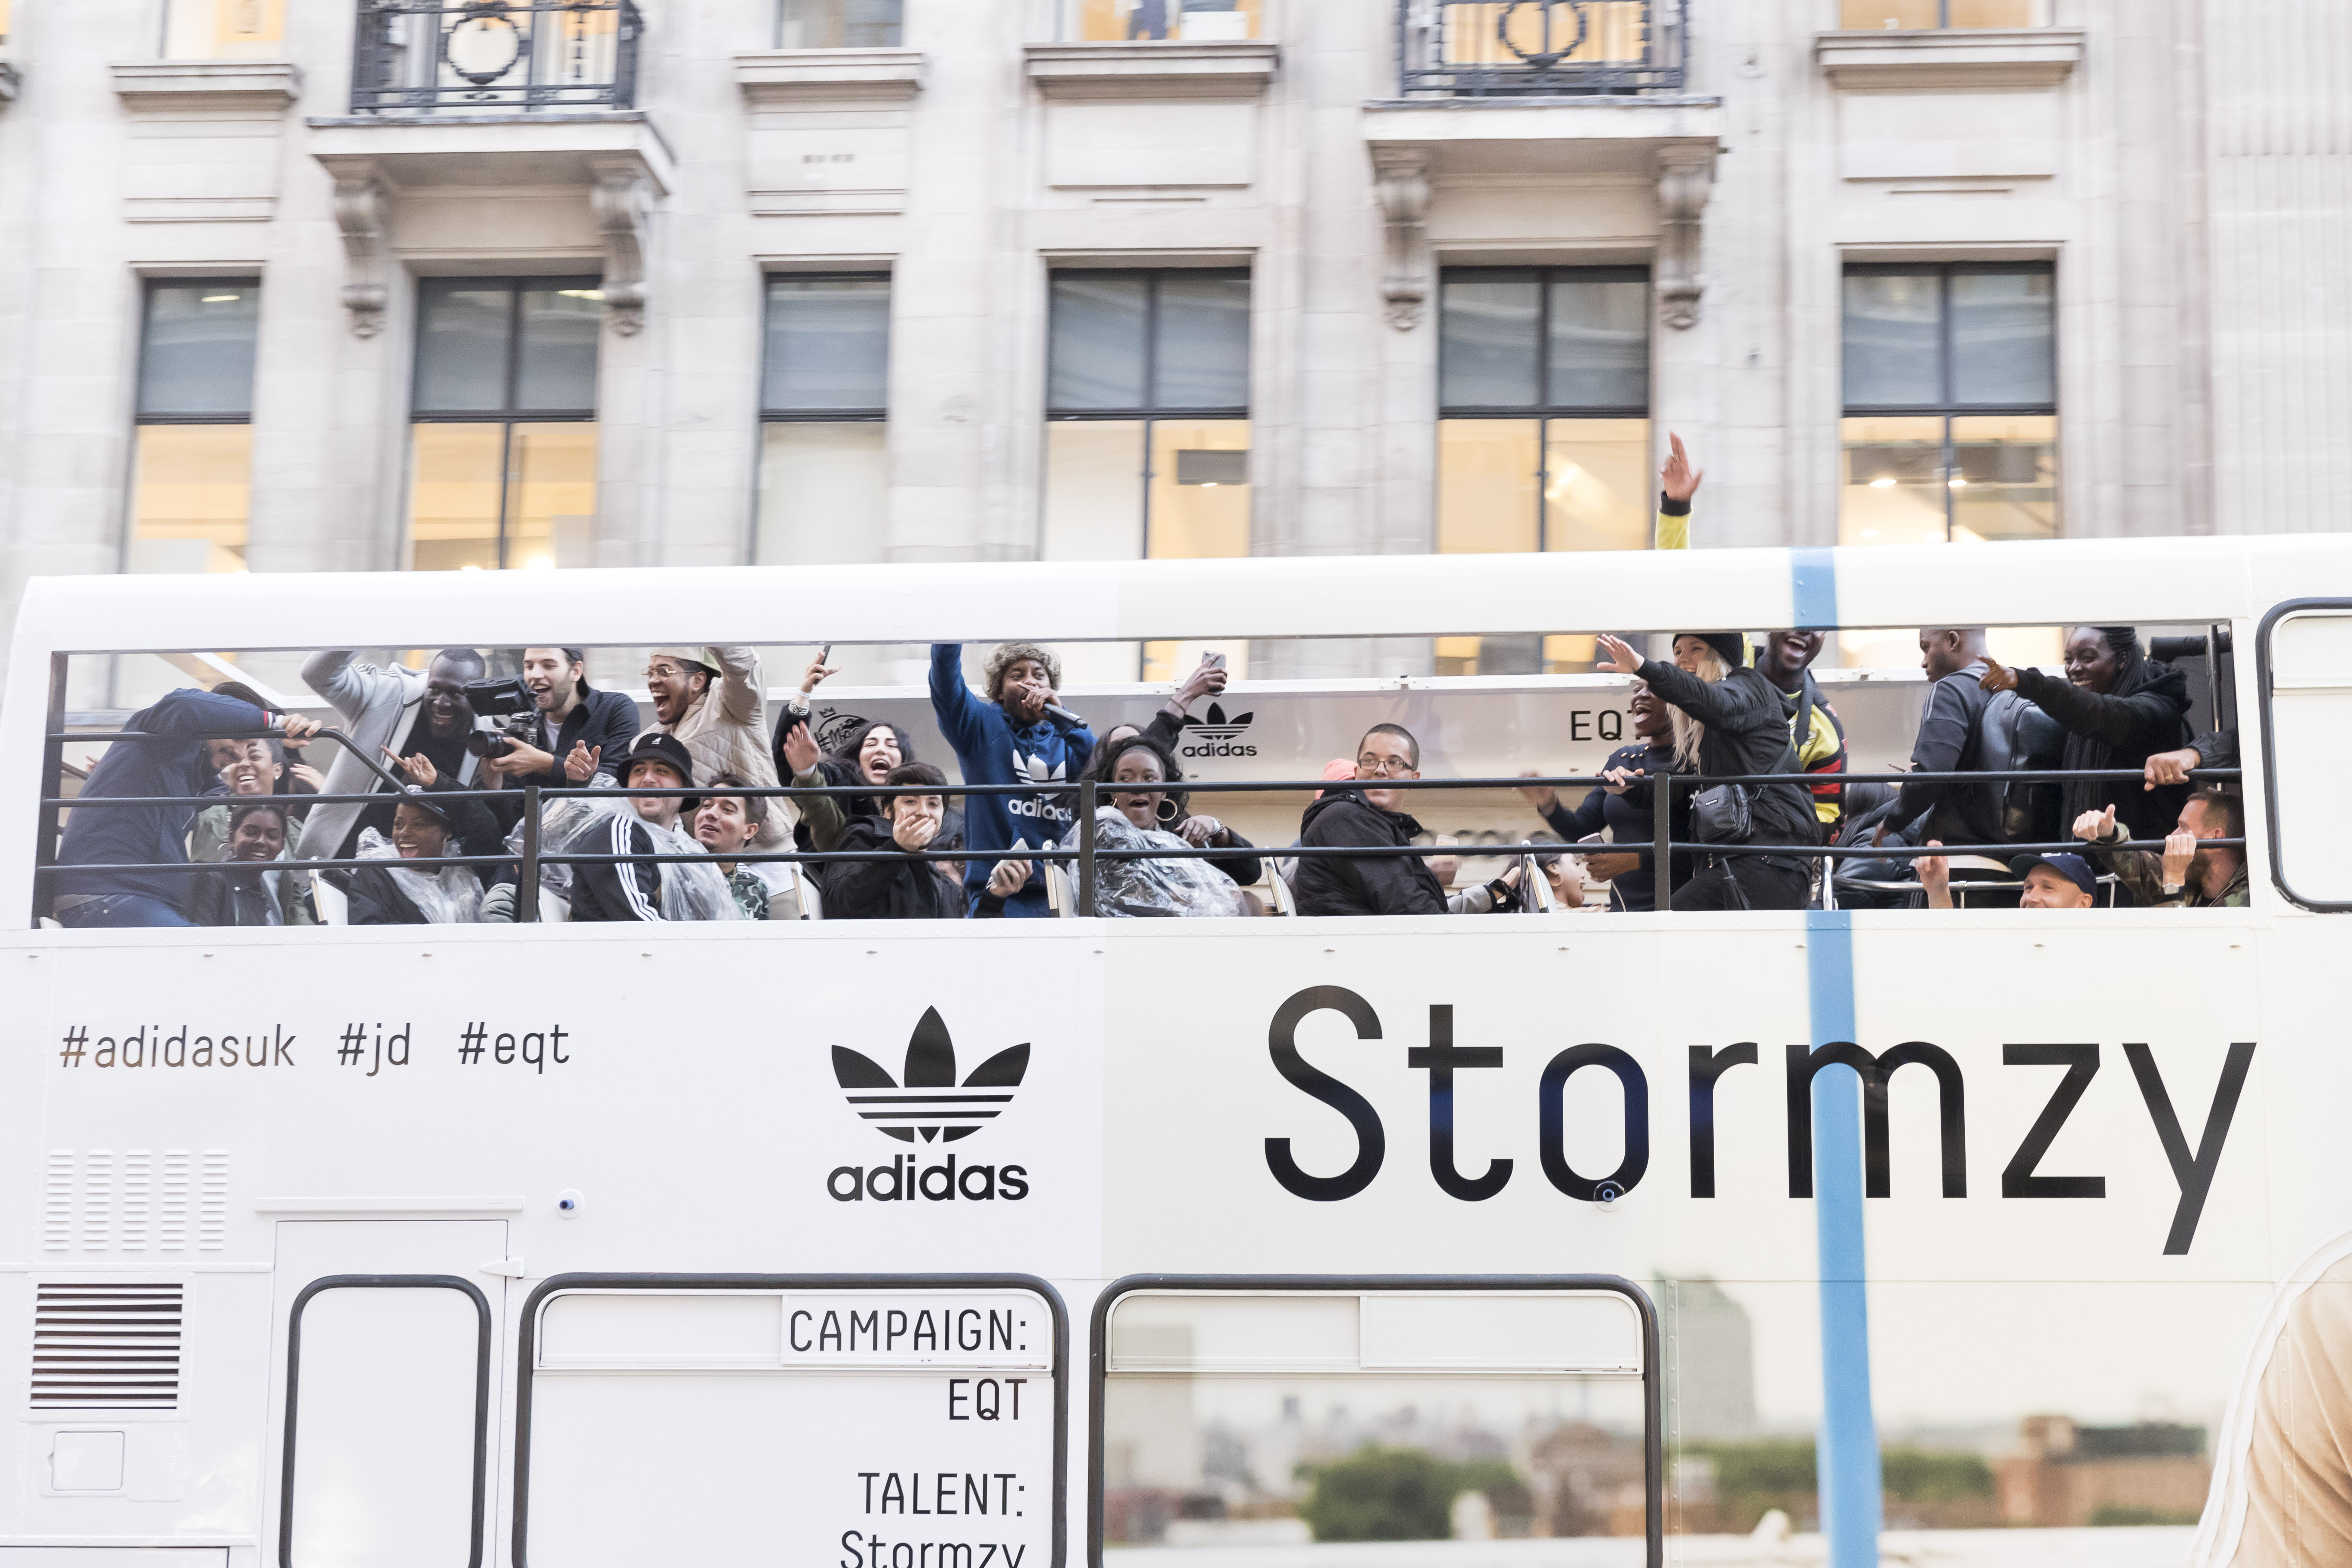 Stormzy shuts down London on double decker bus